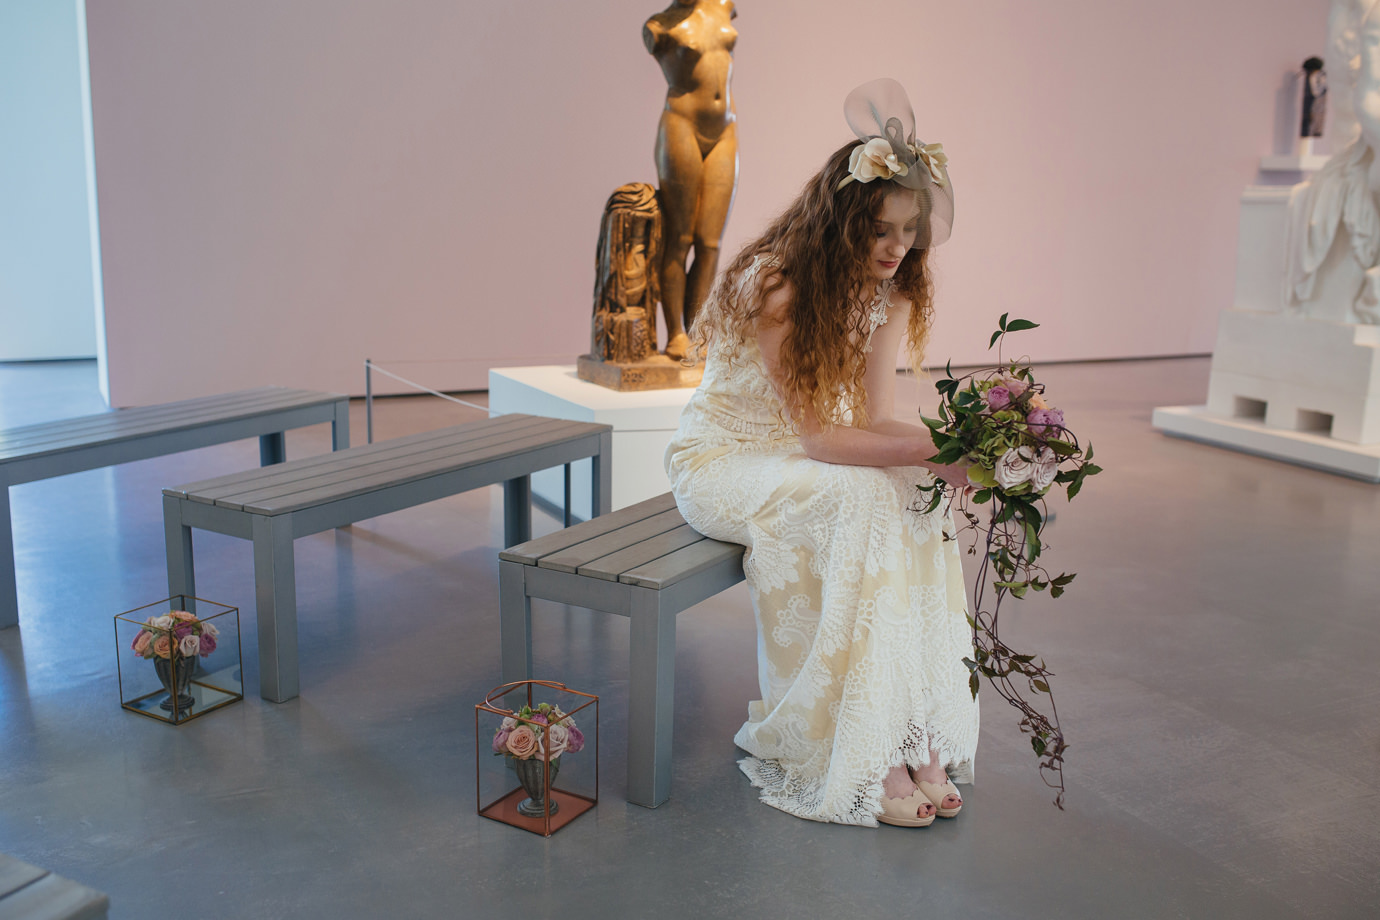 Wedding shoot at the Hepworth Wakefield